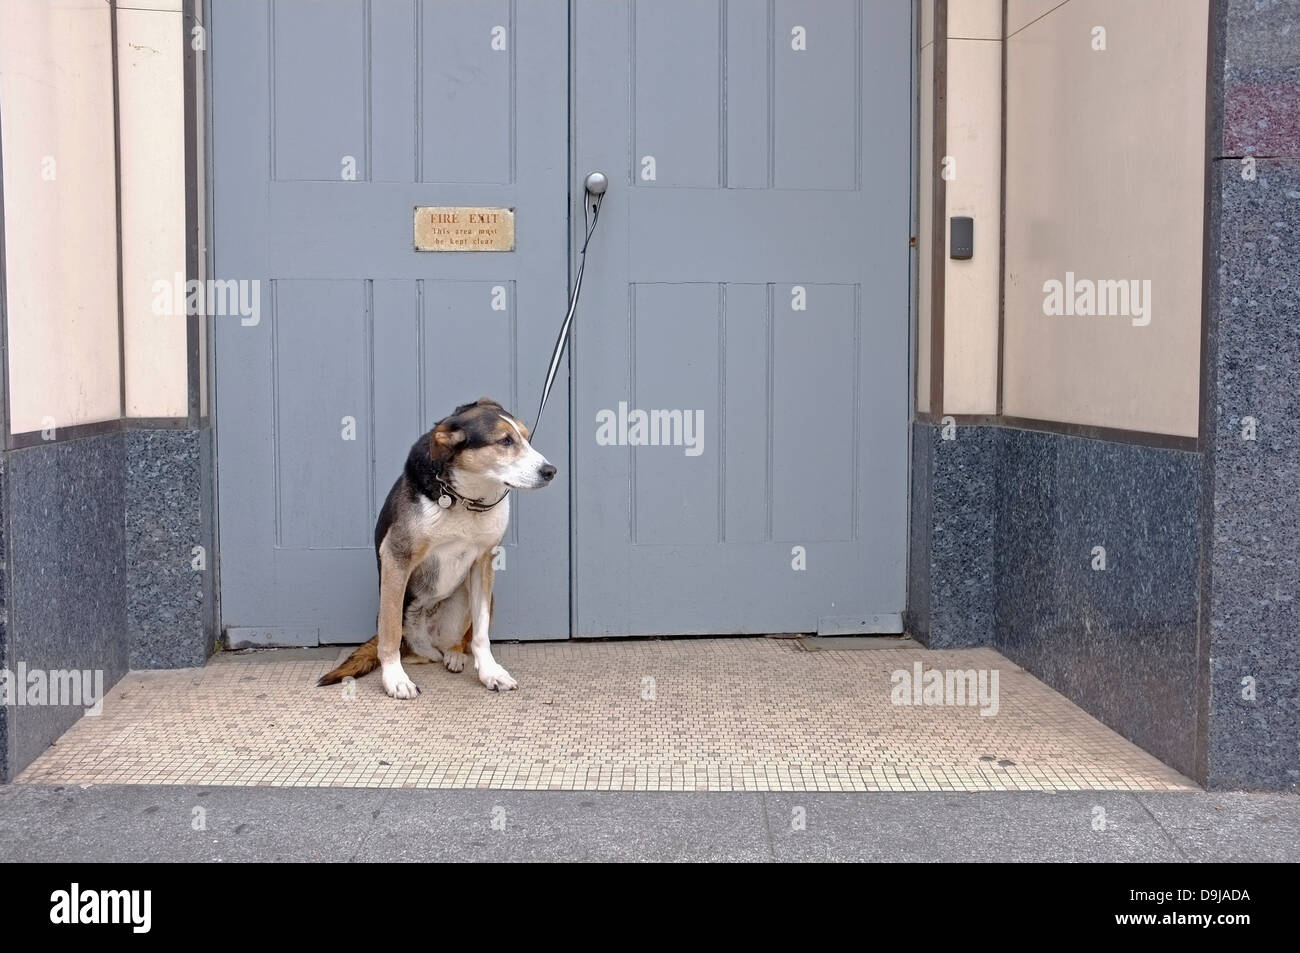 A dog tied to a door waits for it's owner - Stock Image